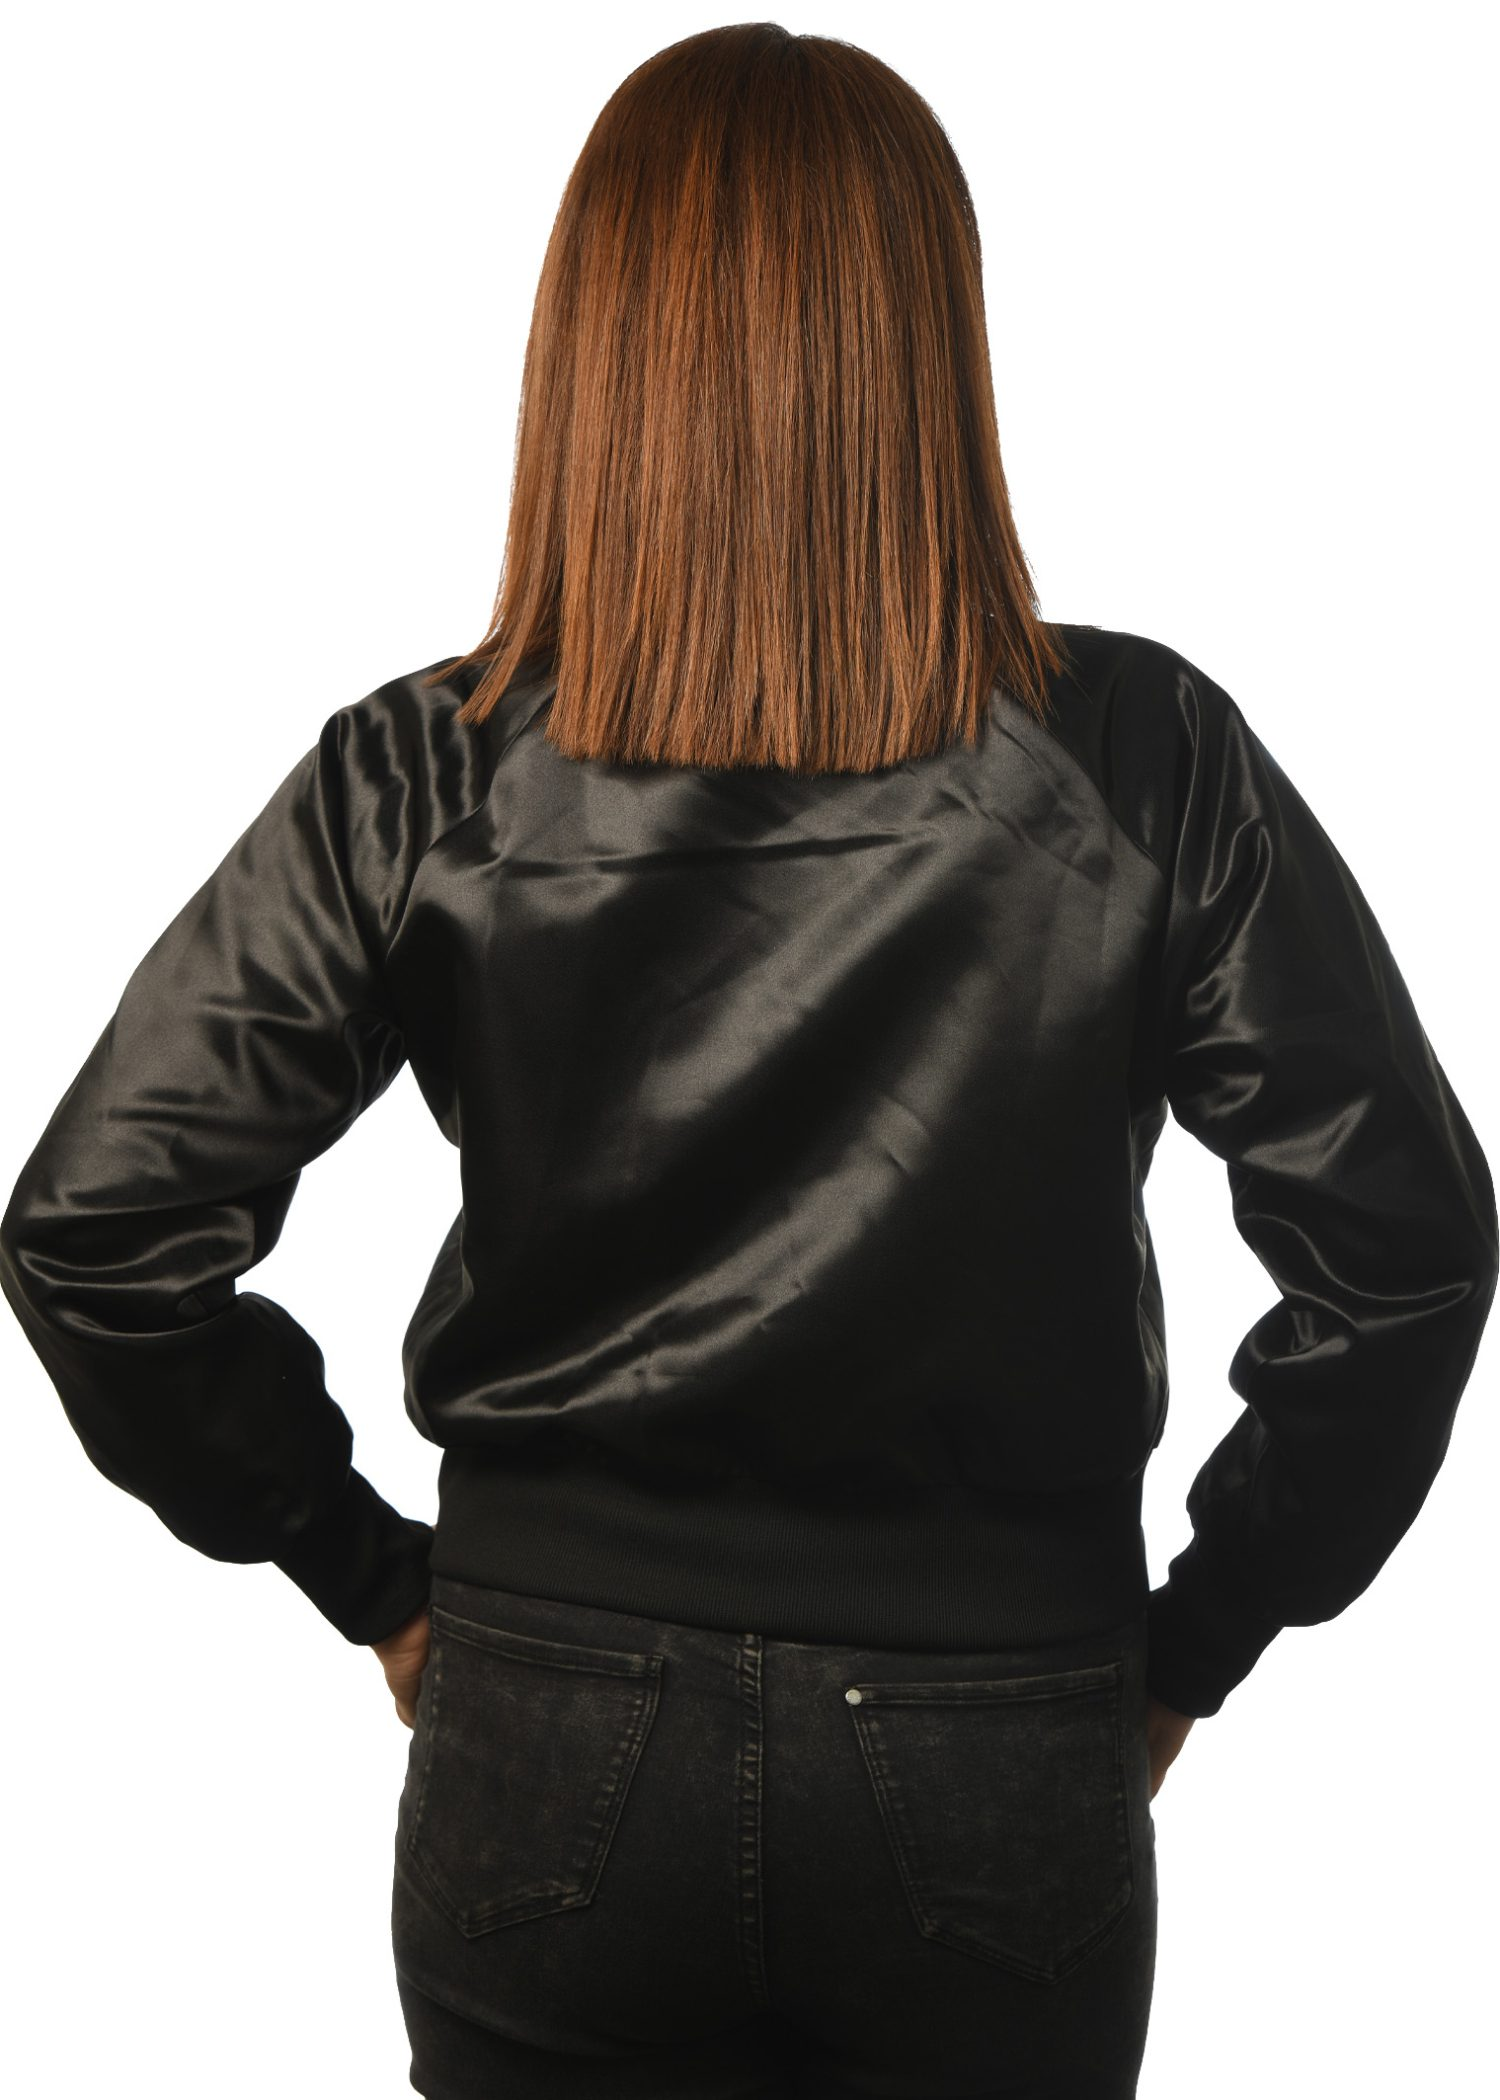 GG-905 Women's Satin Bomber back